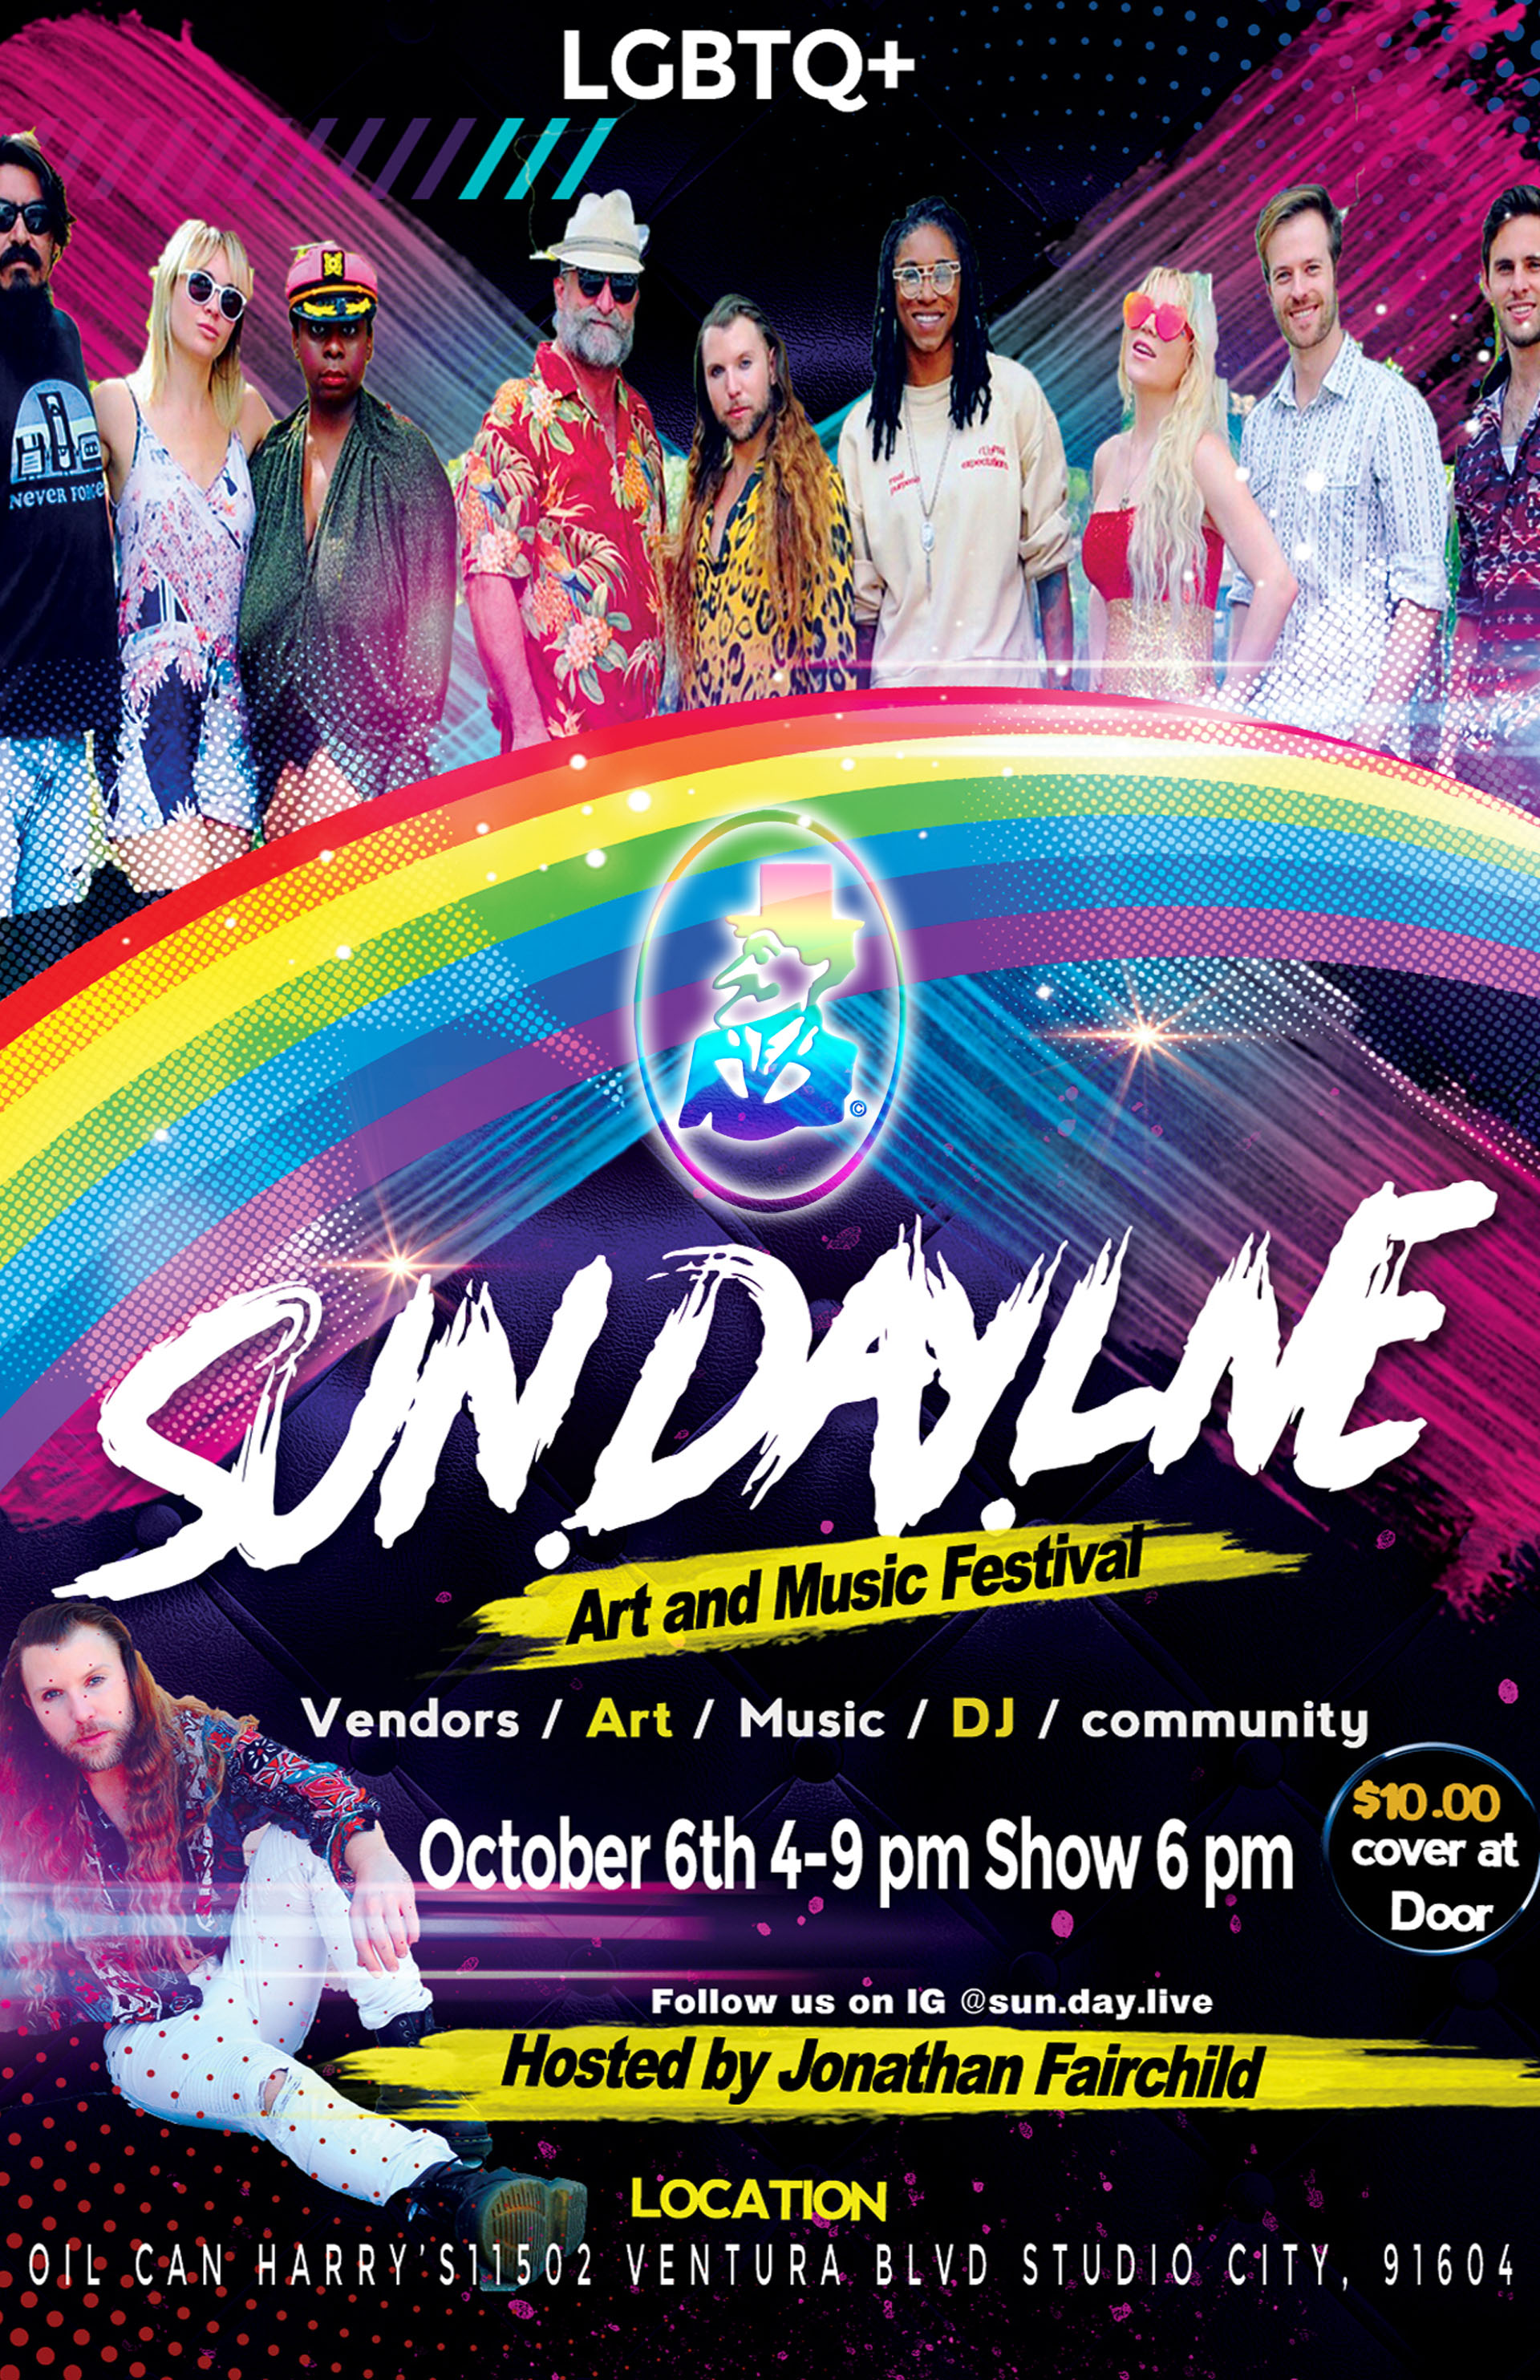 Oil Can Harry's Presents an LGBTQ+ ART & MUSIC FESTIVAL: Sunday, October 6, 2019, 4-9 PM. Live show starts at 6 PM. $10 at the door.